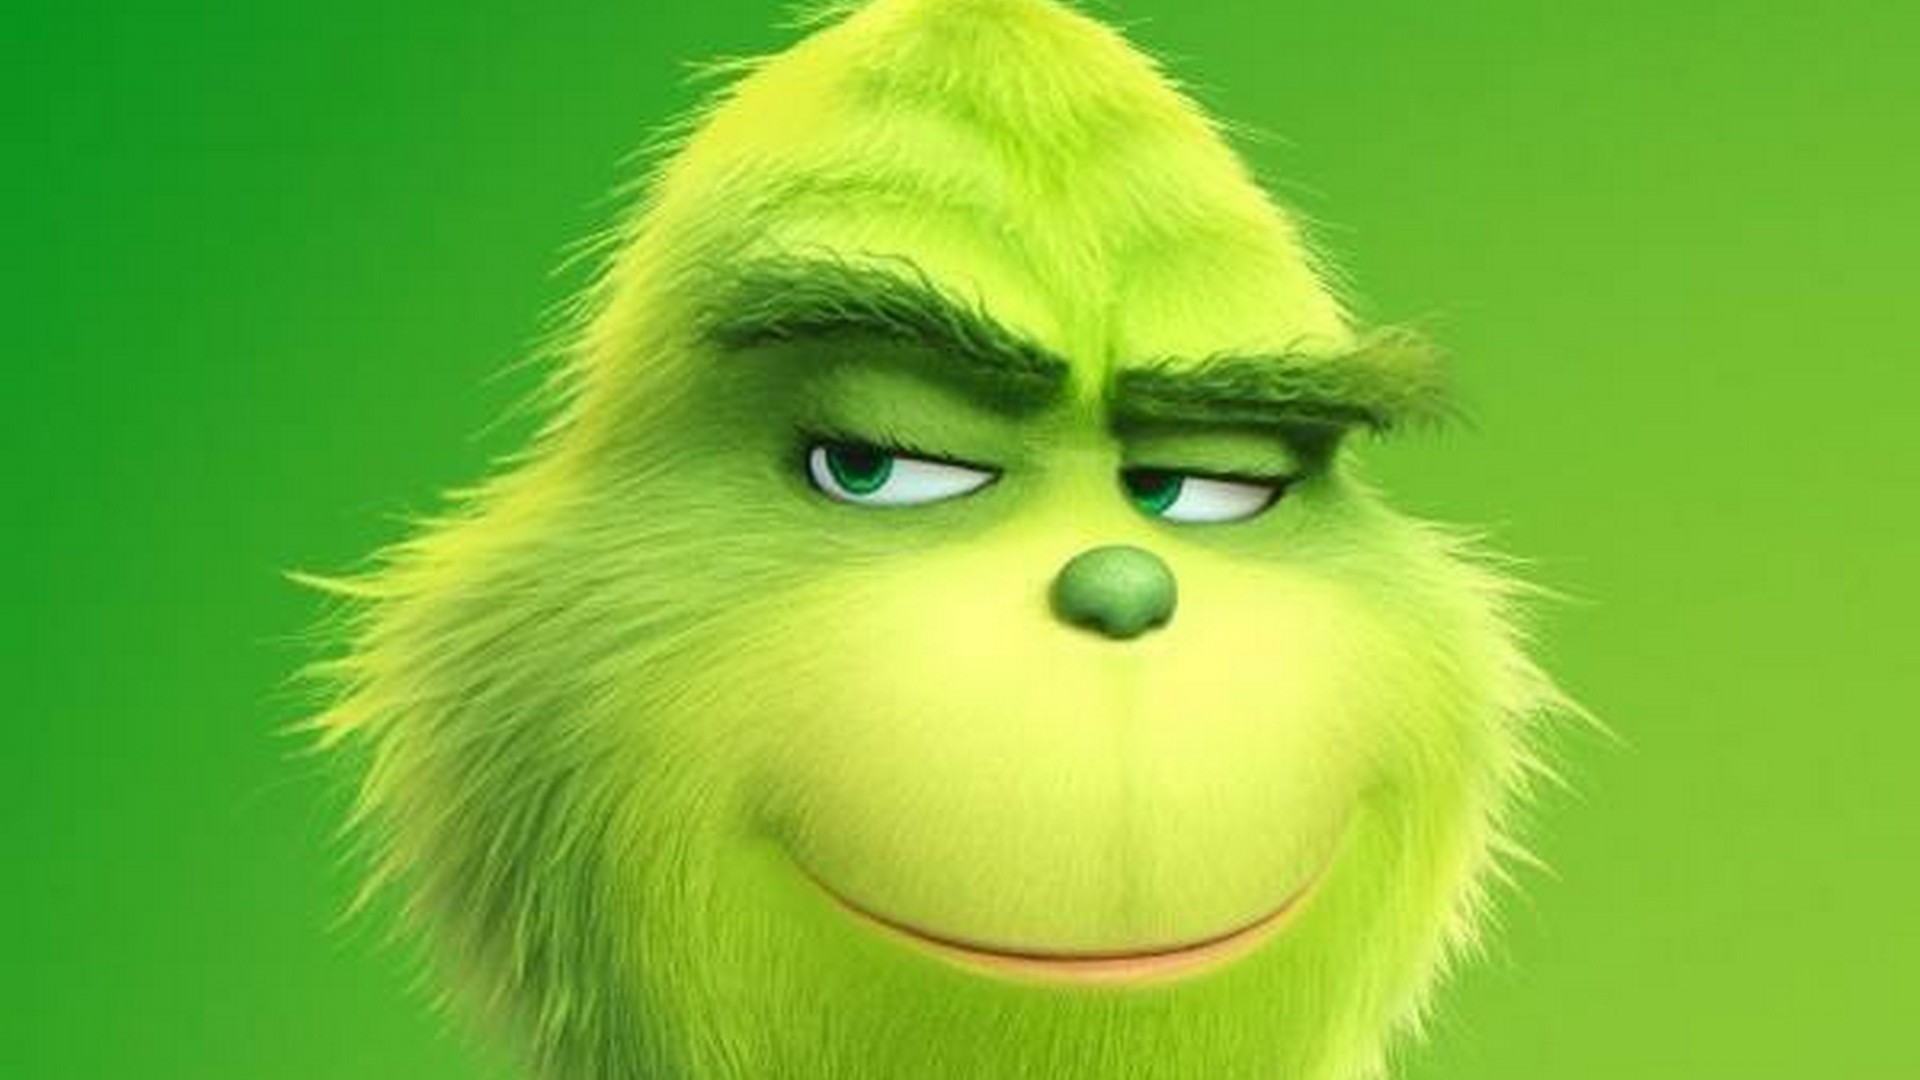 The Grinch Wallpaper HD 2020 Cute Wallpapers 1920x1080